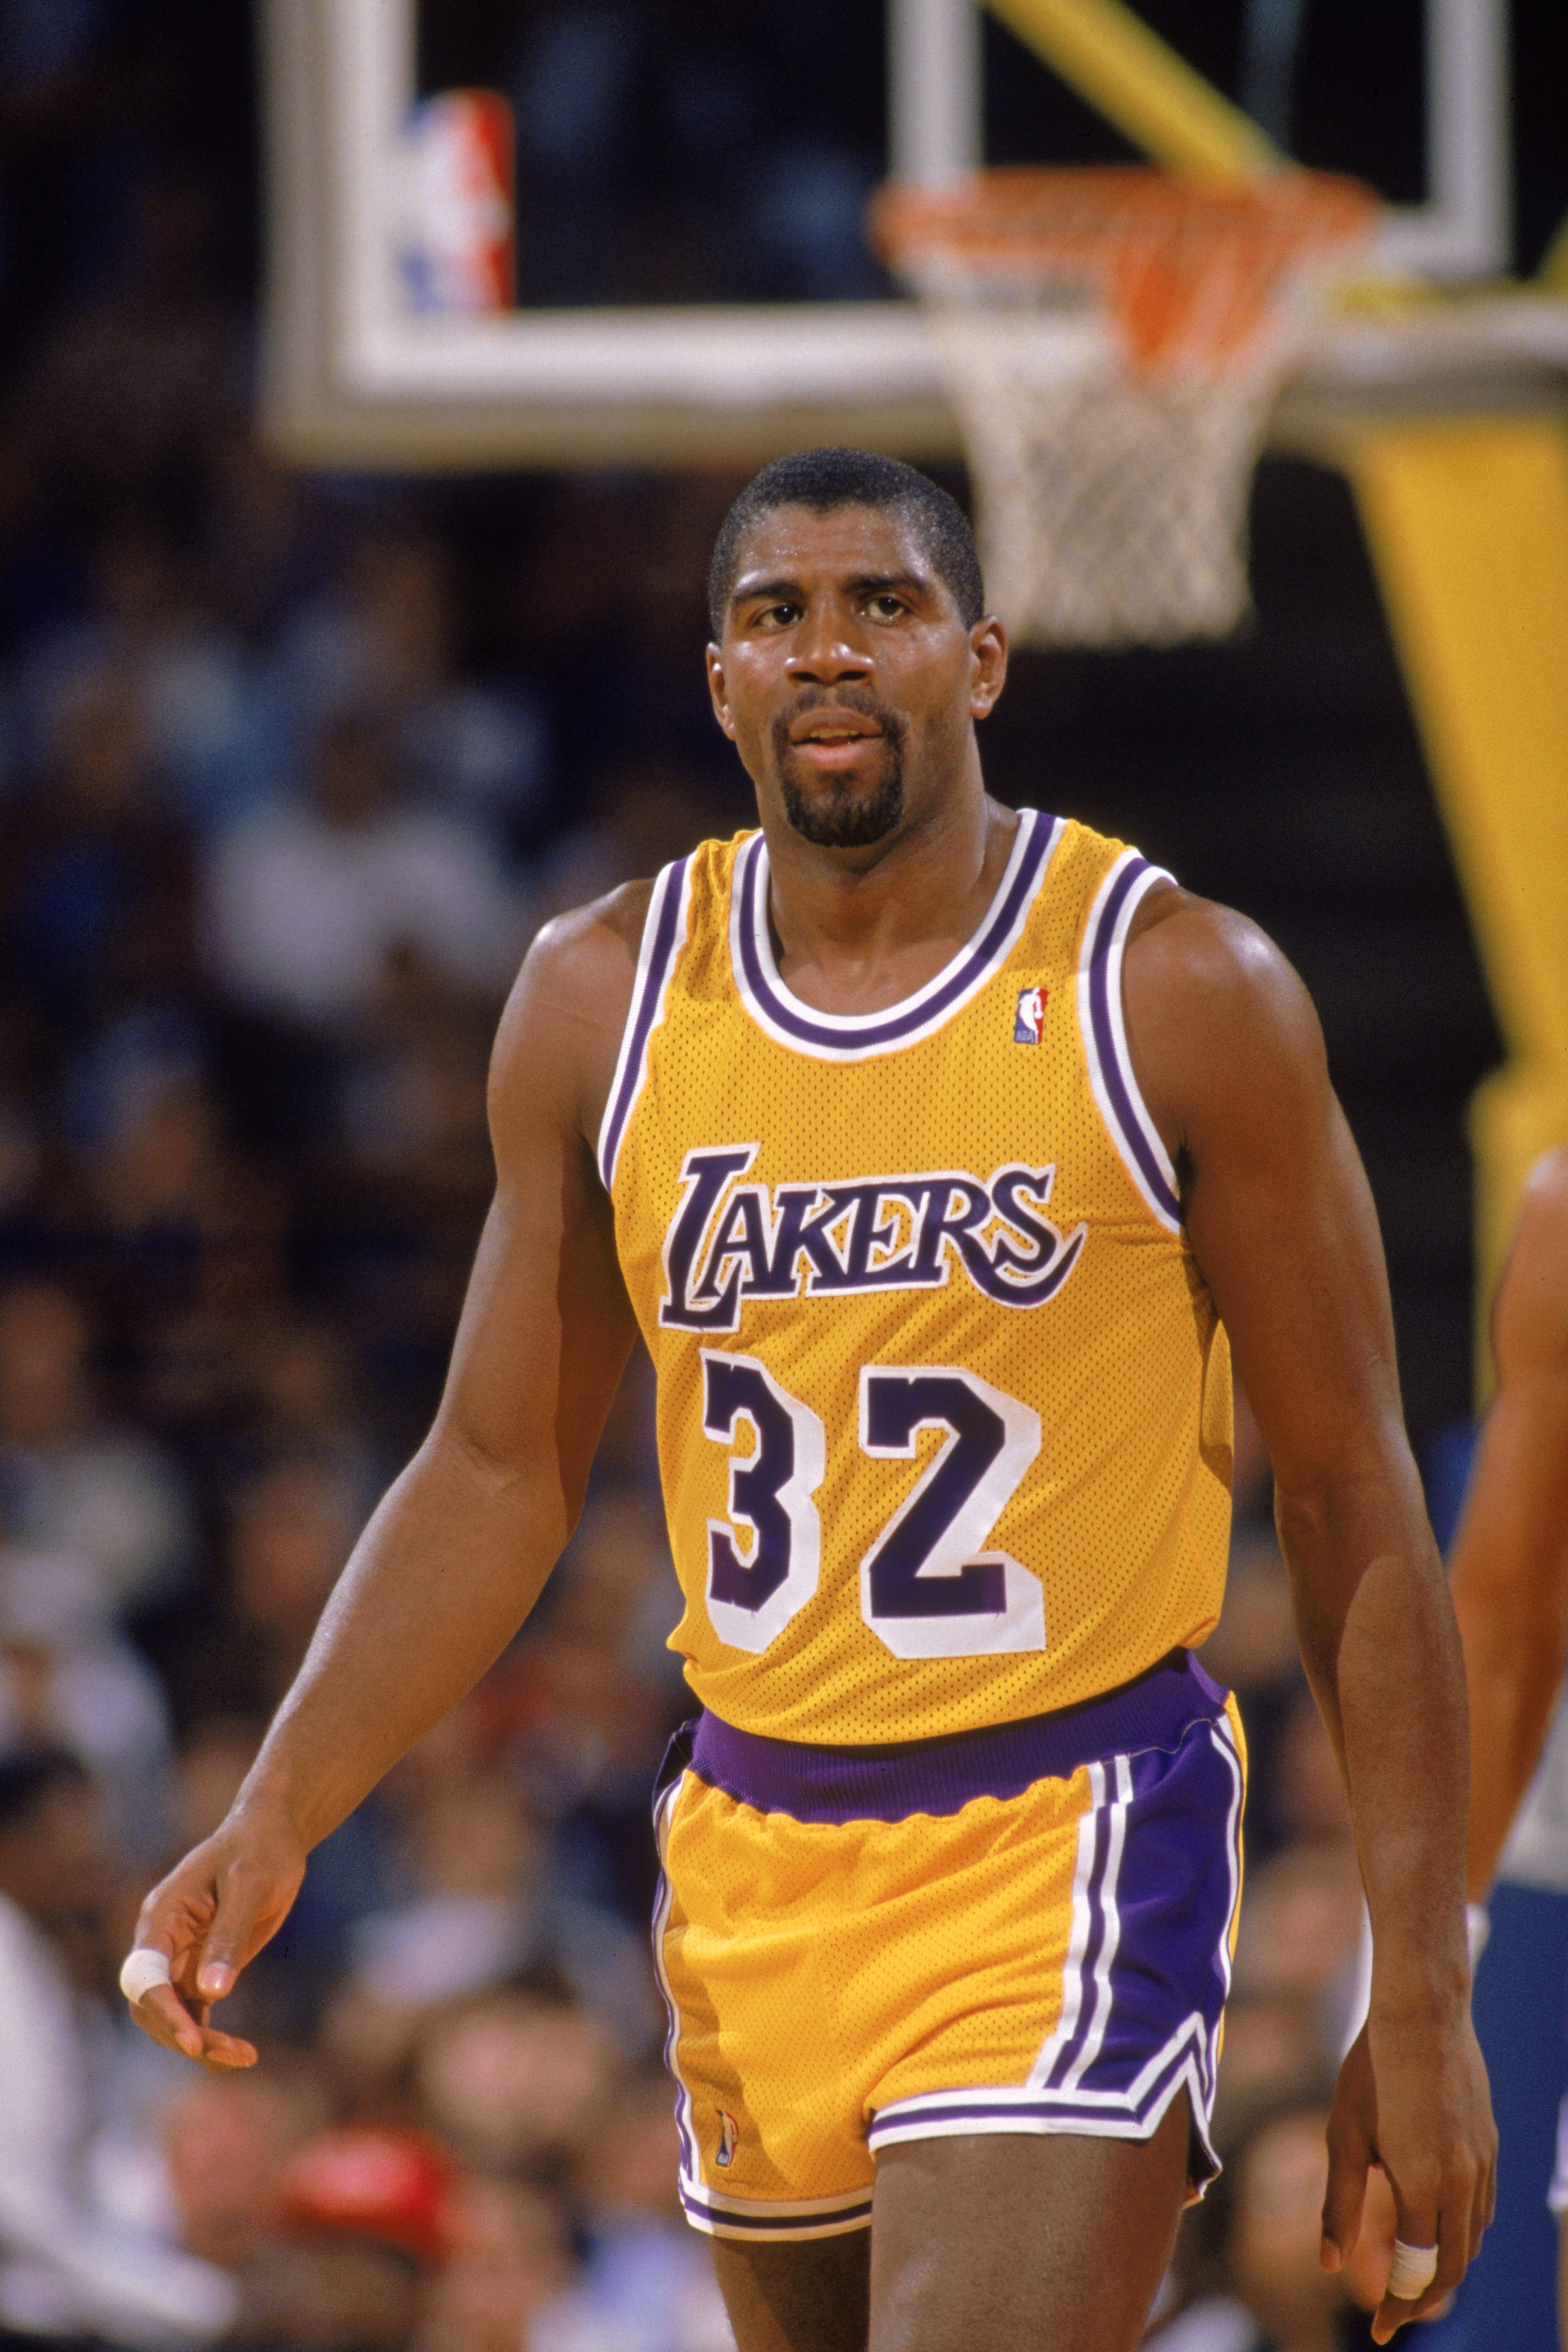 Earvin Magic Johnson on the court as #32 for the LA Lakers during an NBA Game at the Great Western Forum in 1988 | Photo: Getty Images